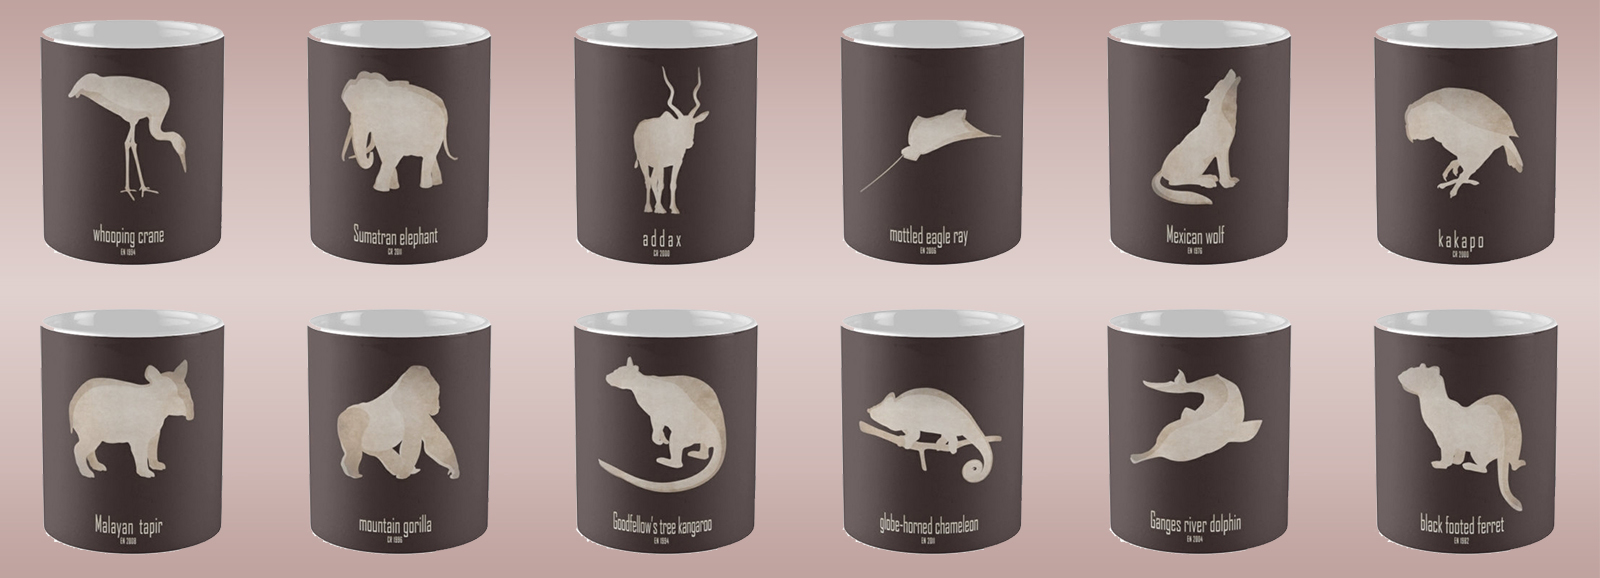 mug coffee tea cup travel endangered animals names list species near extinction critically wildlife conservation foundation wildcare act IUCN red list logo endemic environmentalist save planet earth emblematic symbol